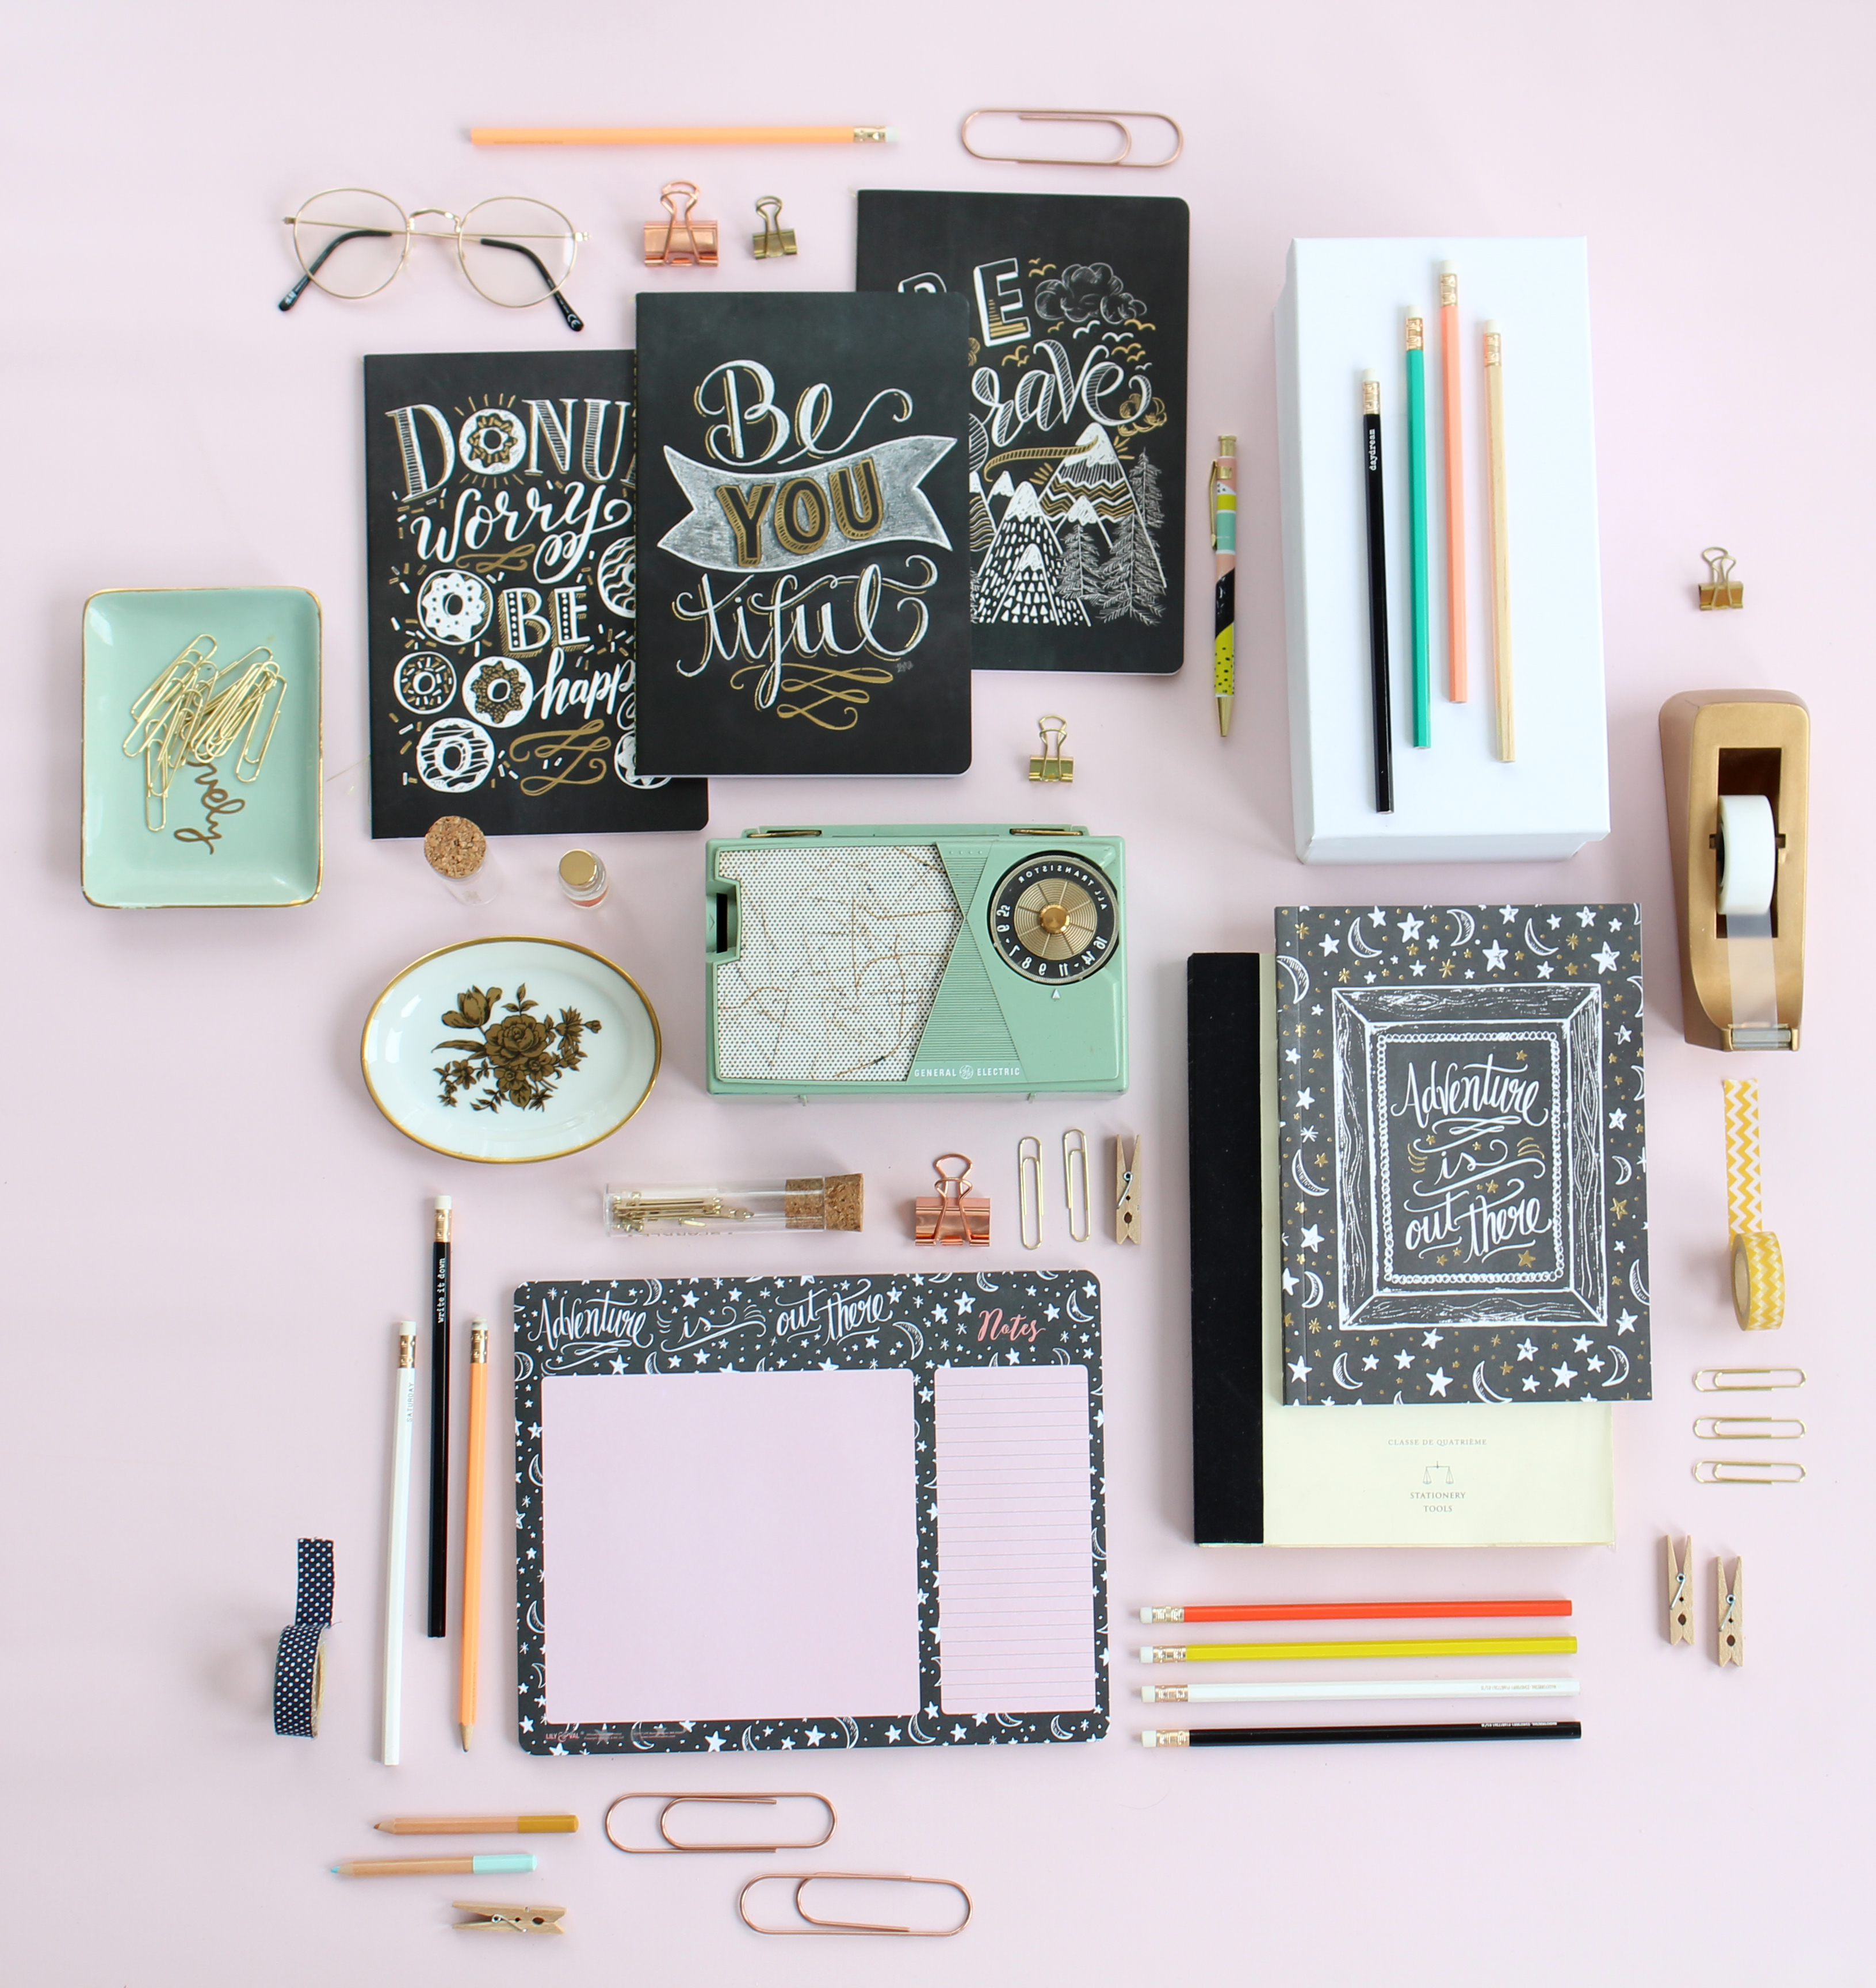 Lily & Val paper supplies, notepads, notebooks, journal, and agenda are here!